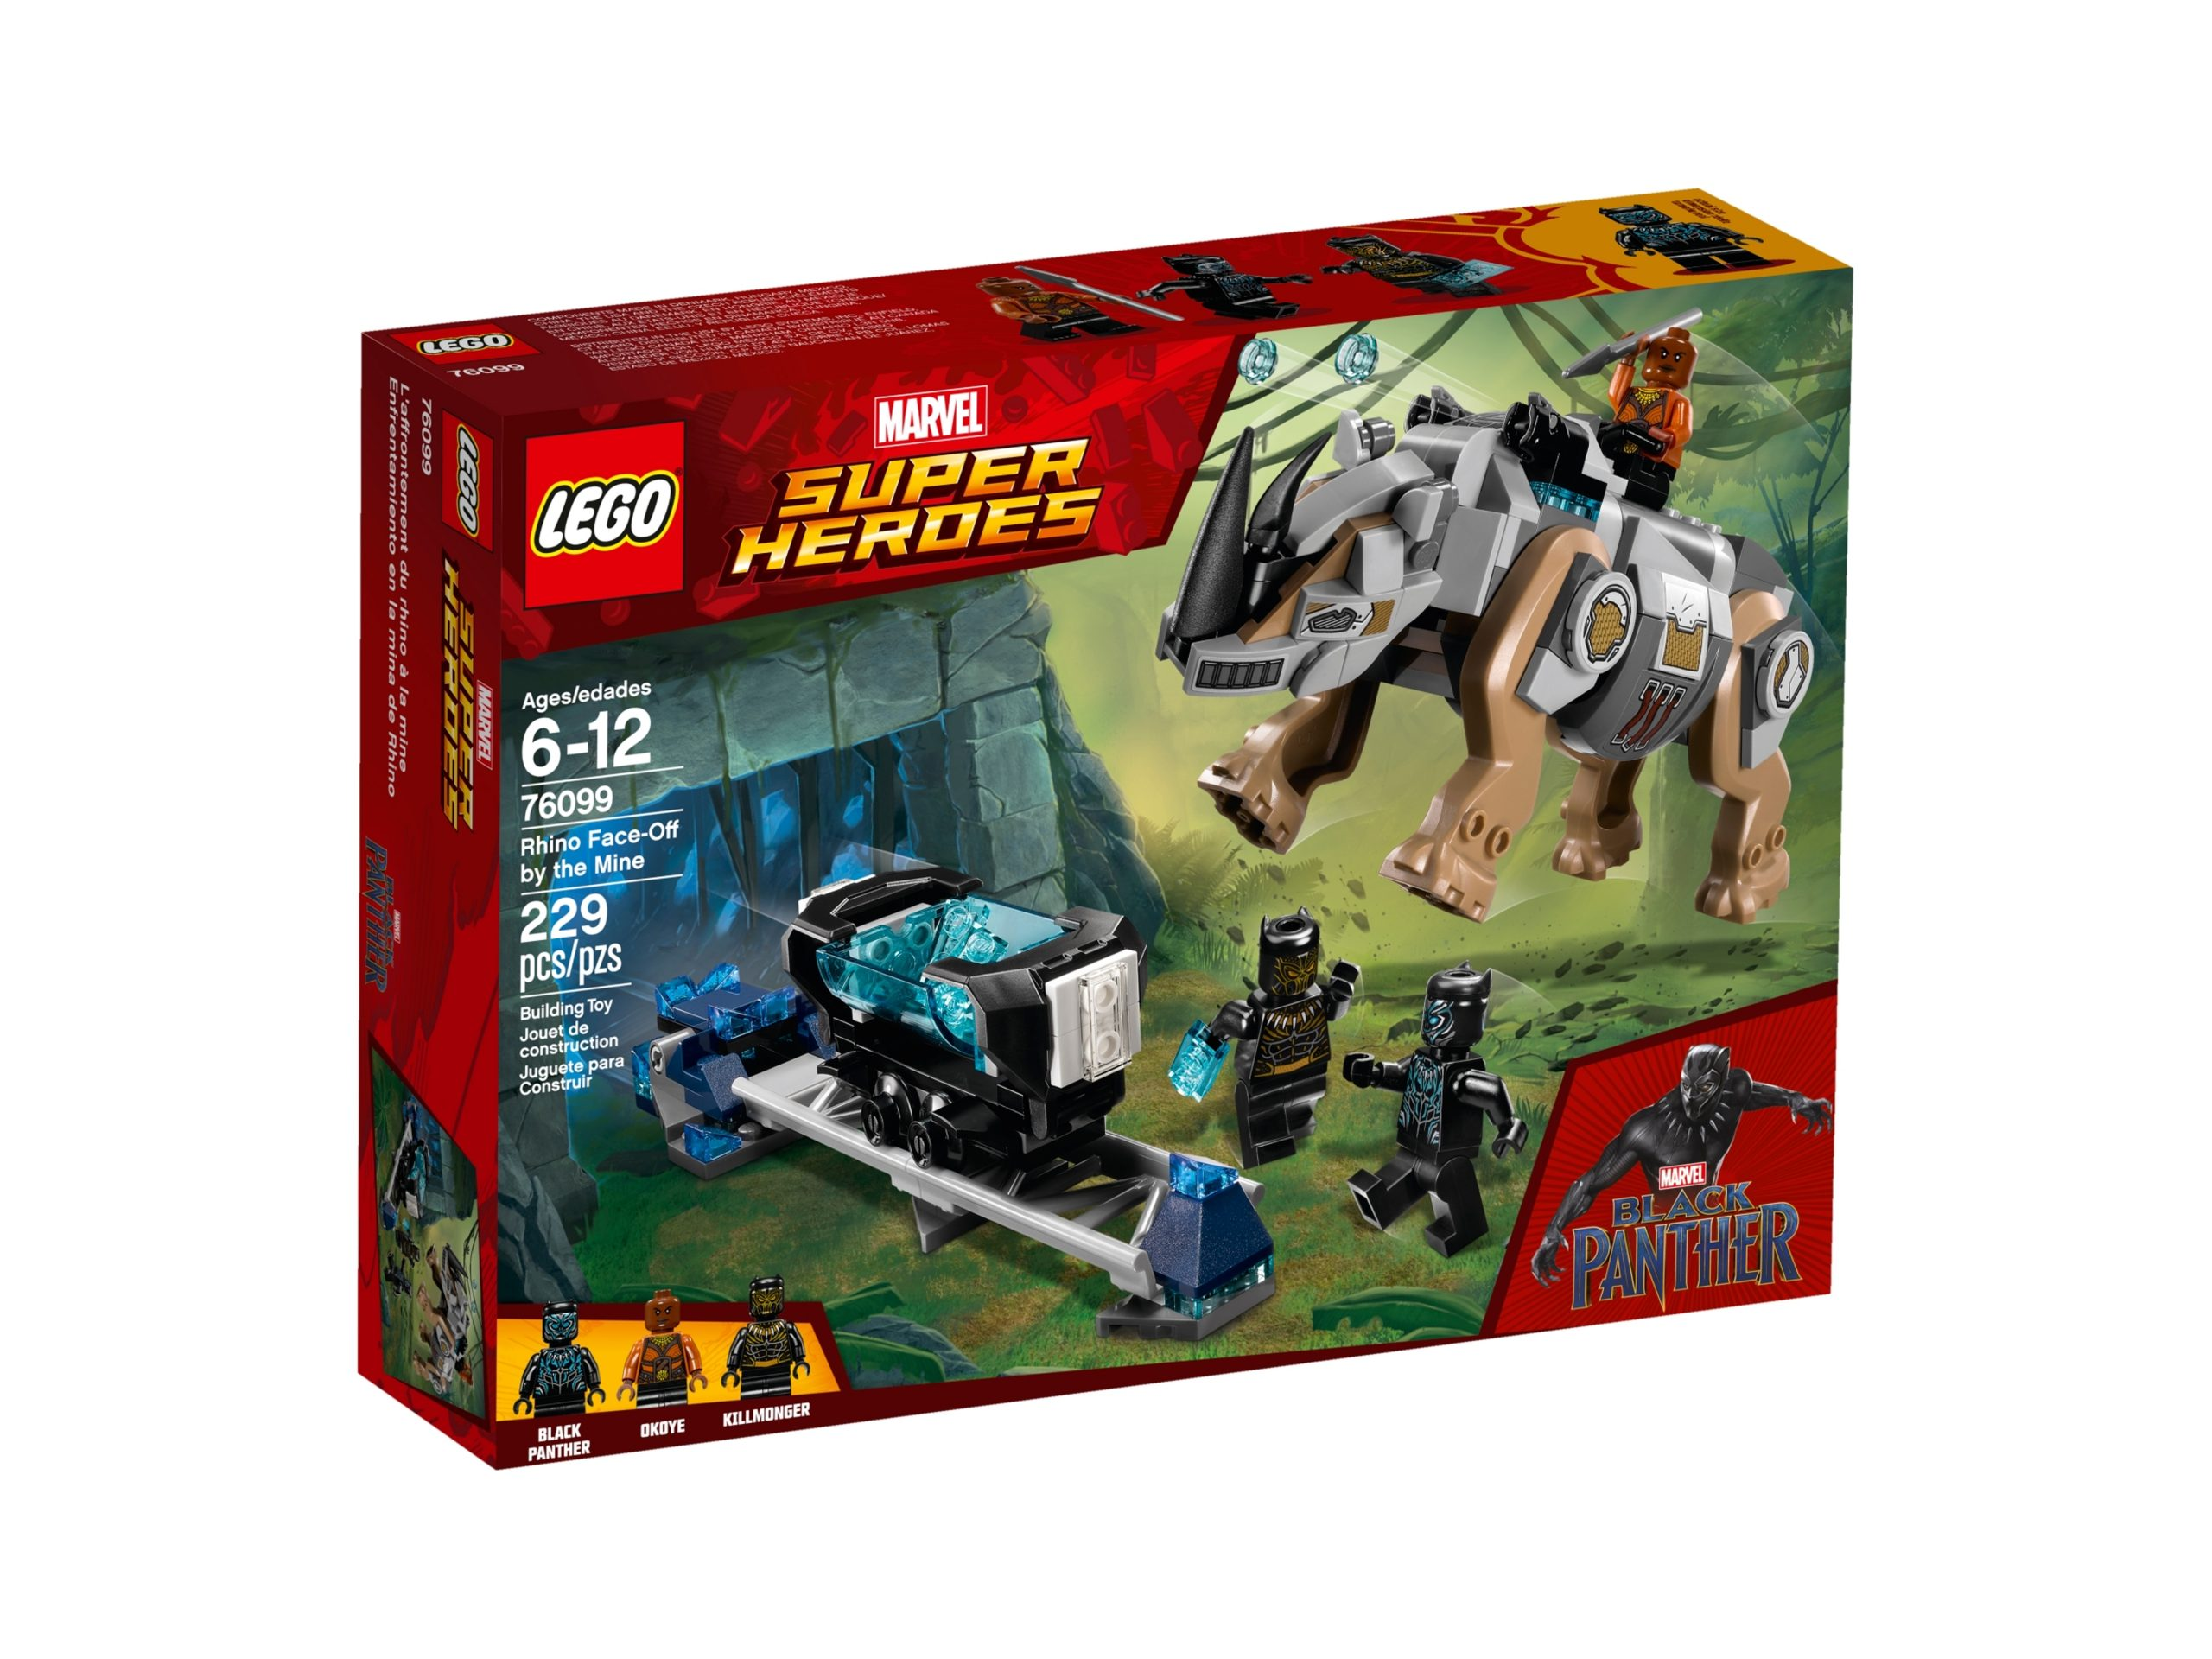 lego 76099 rhino face off by the mine scaled